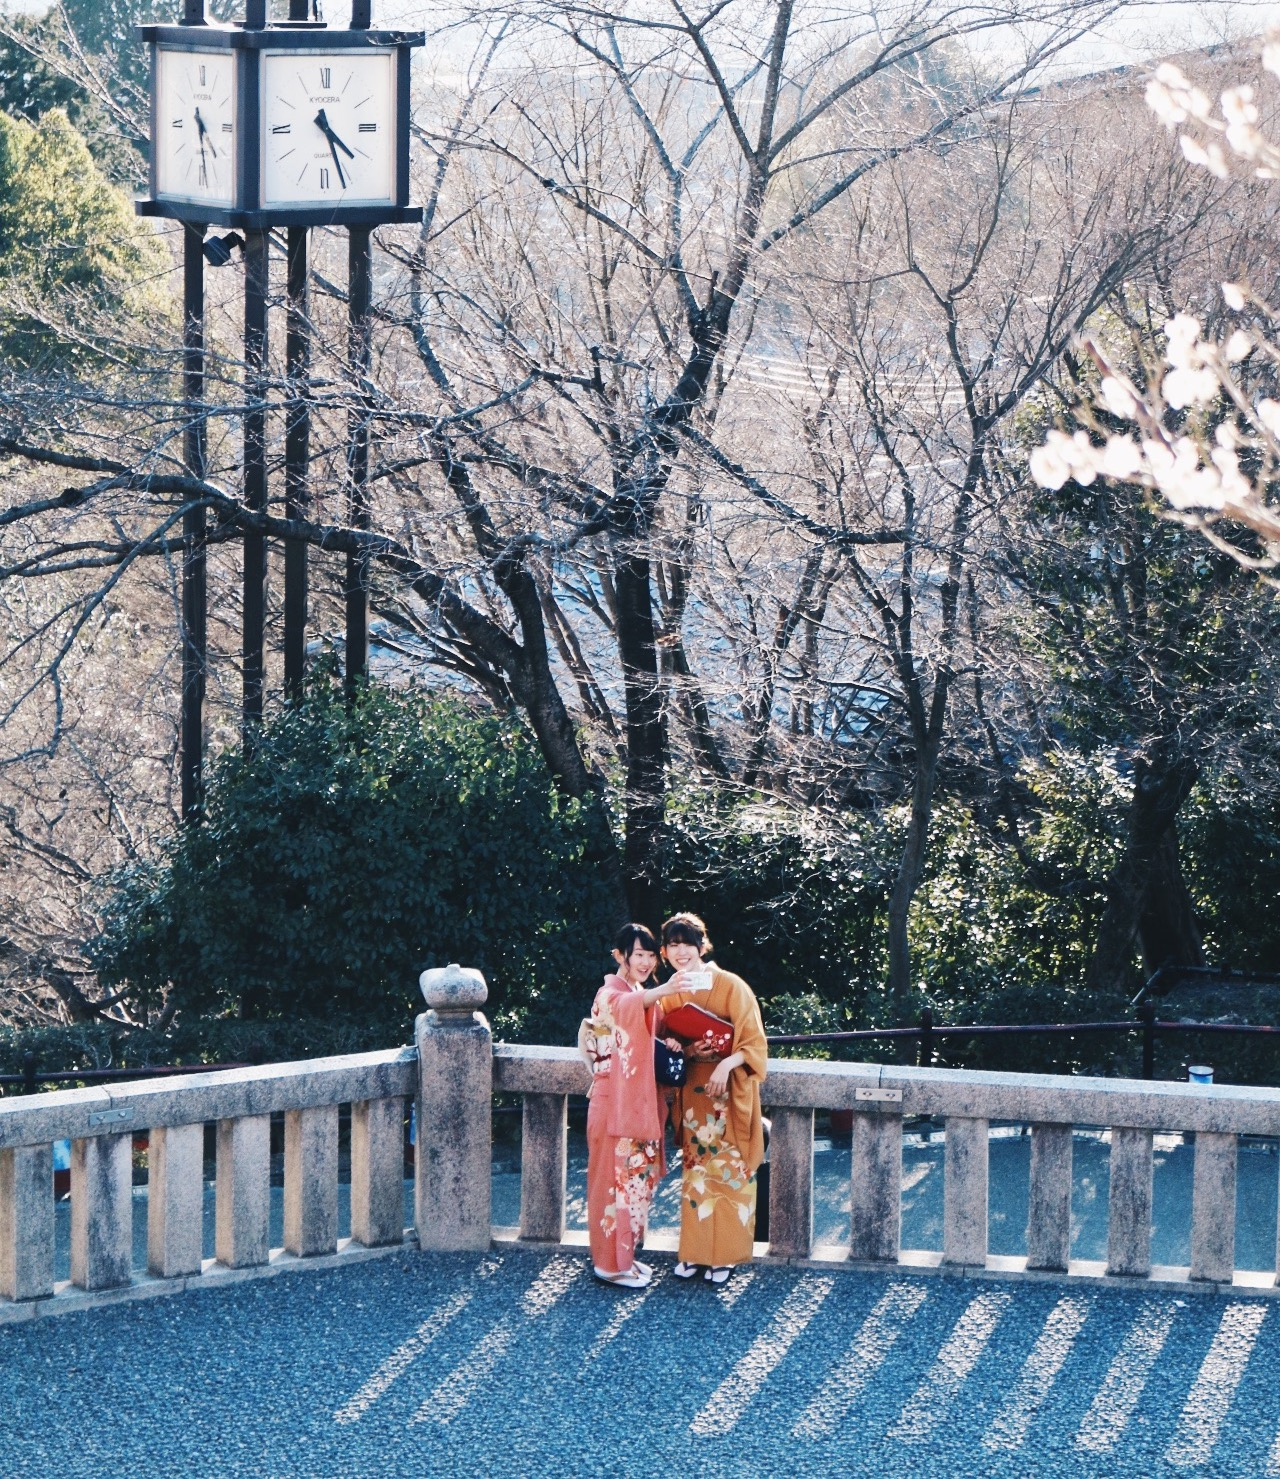 Kiyomizu-dera is massive and you can catch cute moments like this in every pocket